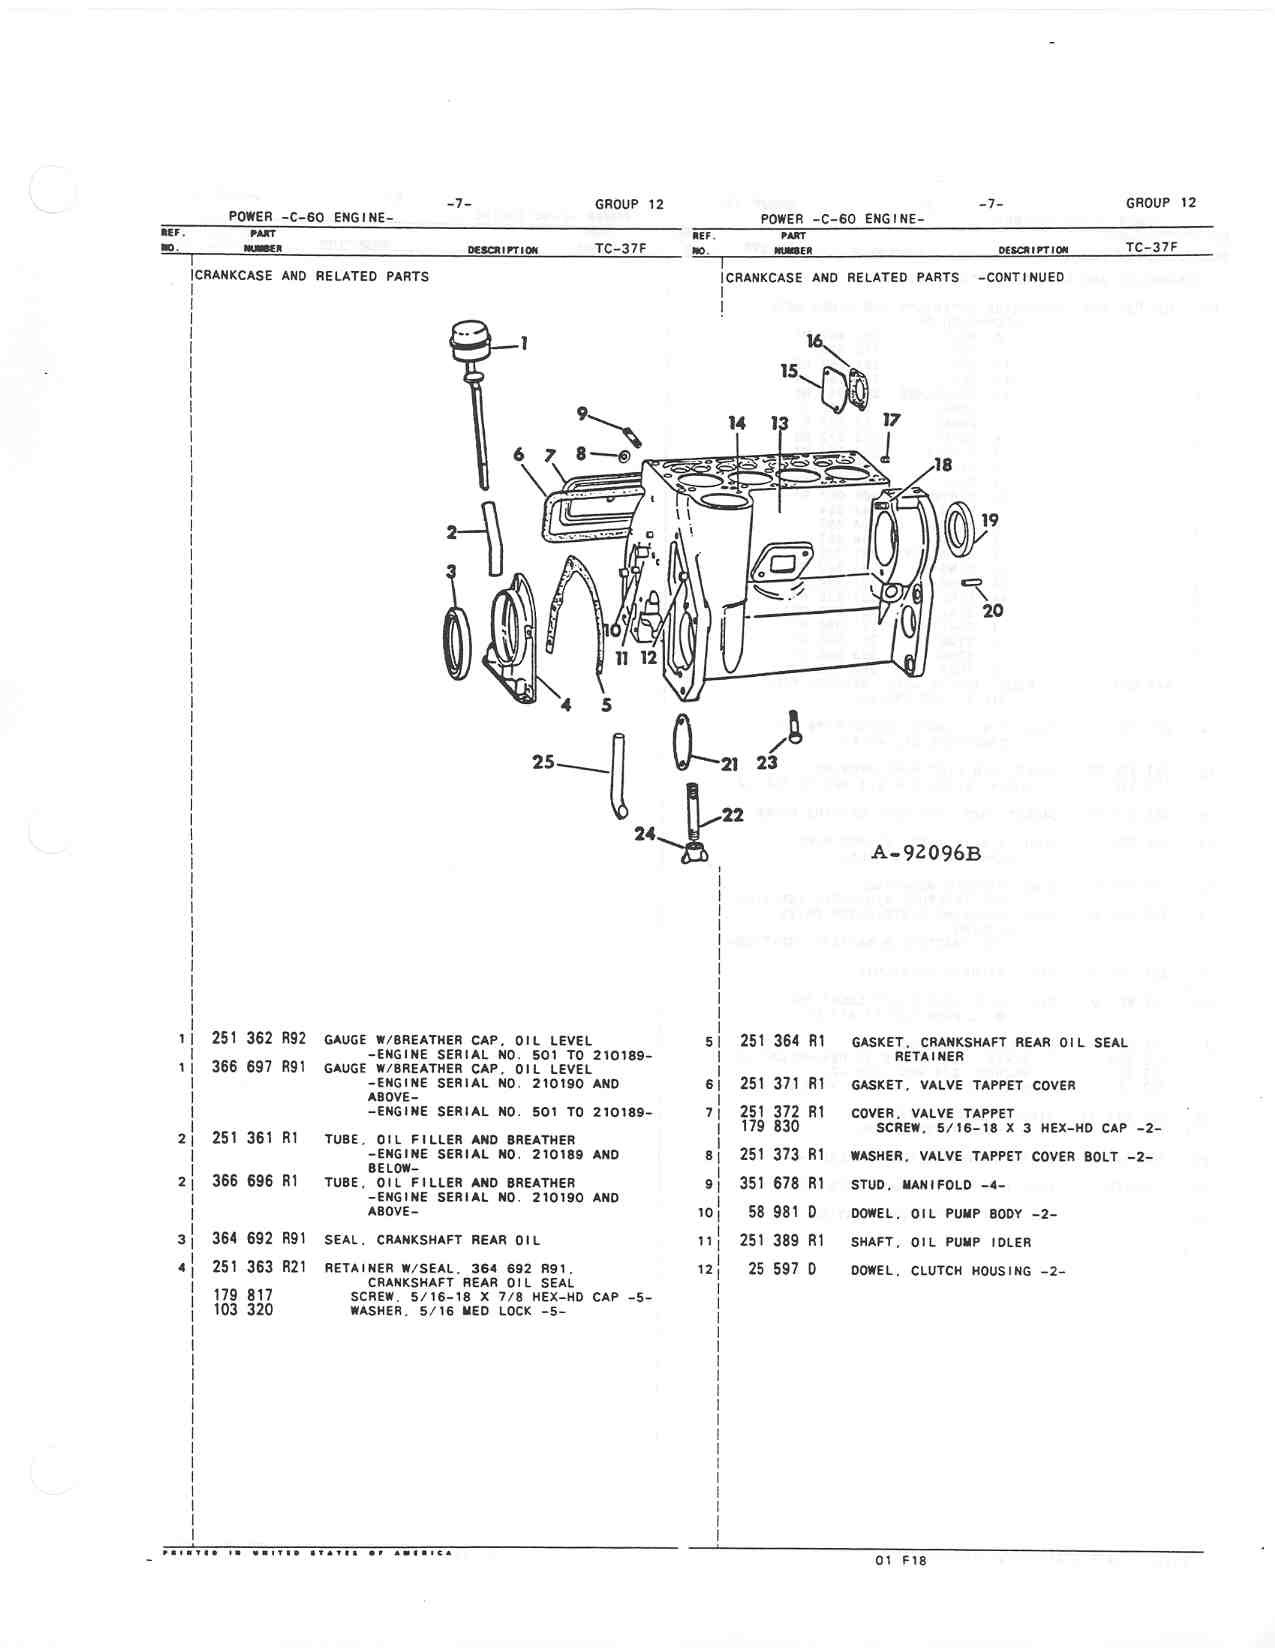 Ih Cub Wiring Diagram 1957 - Wiring Schematics Farmall Cub Tractor Wiring Diagram For on